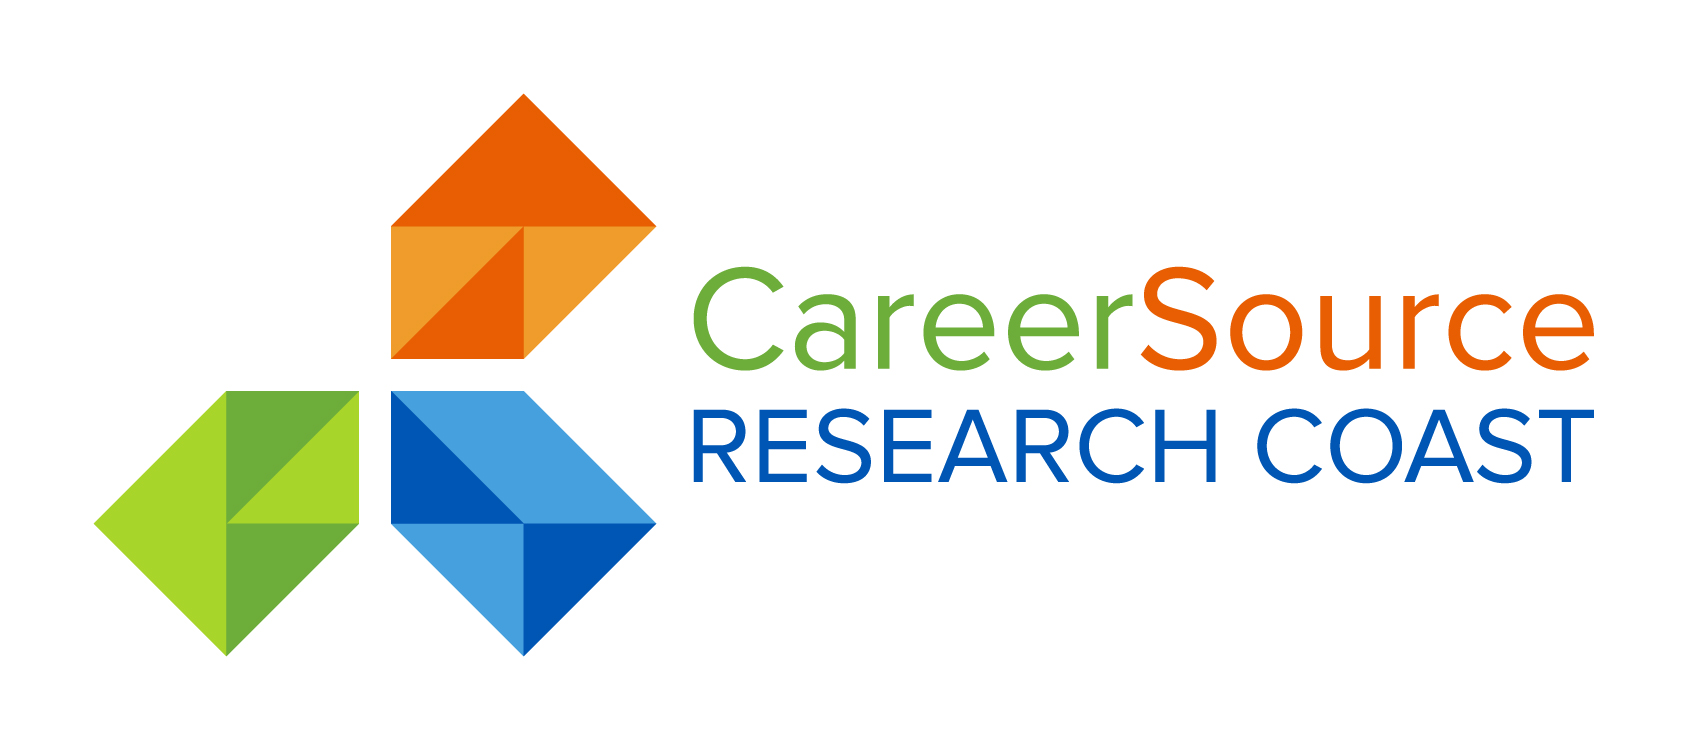 20 CareerSource Research Coast_Full Color